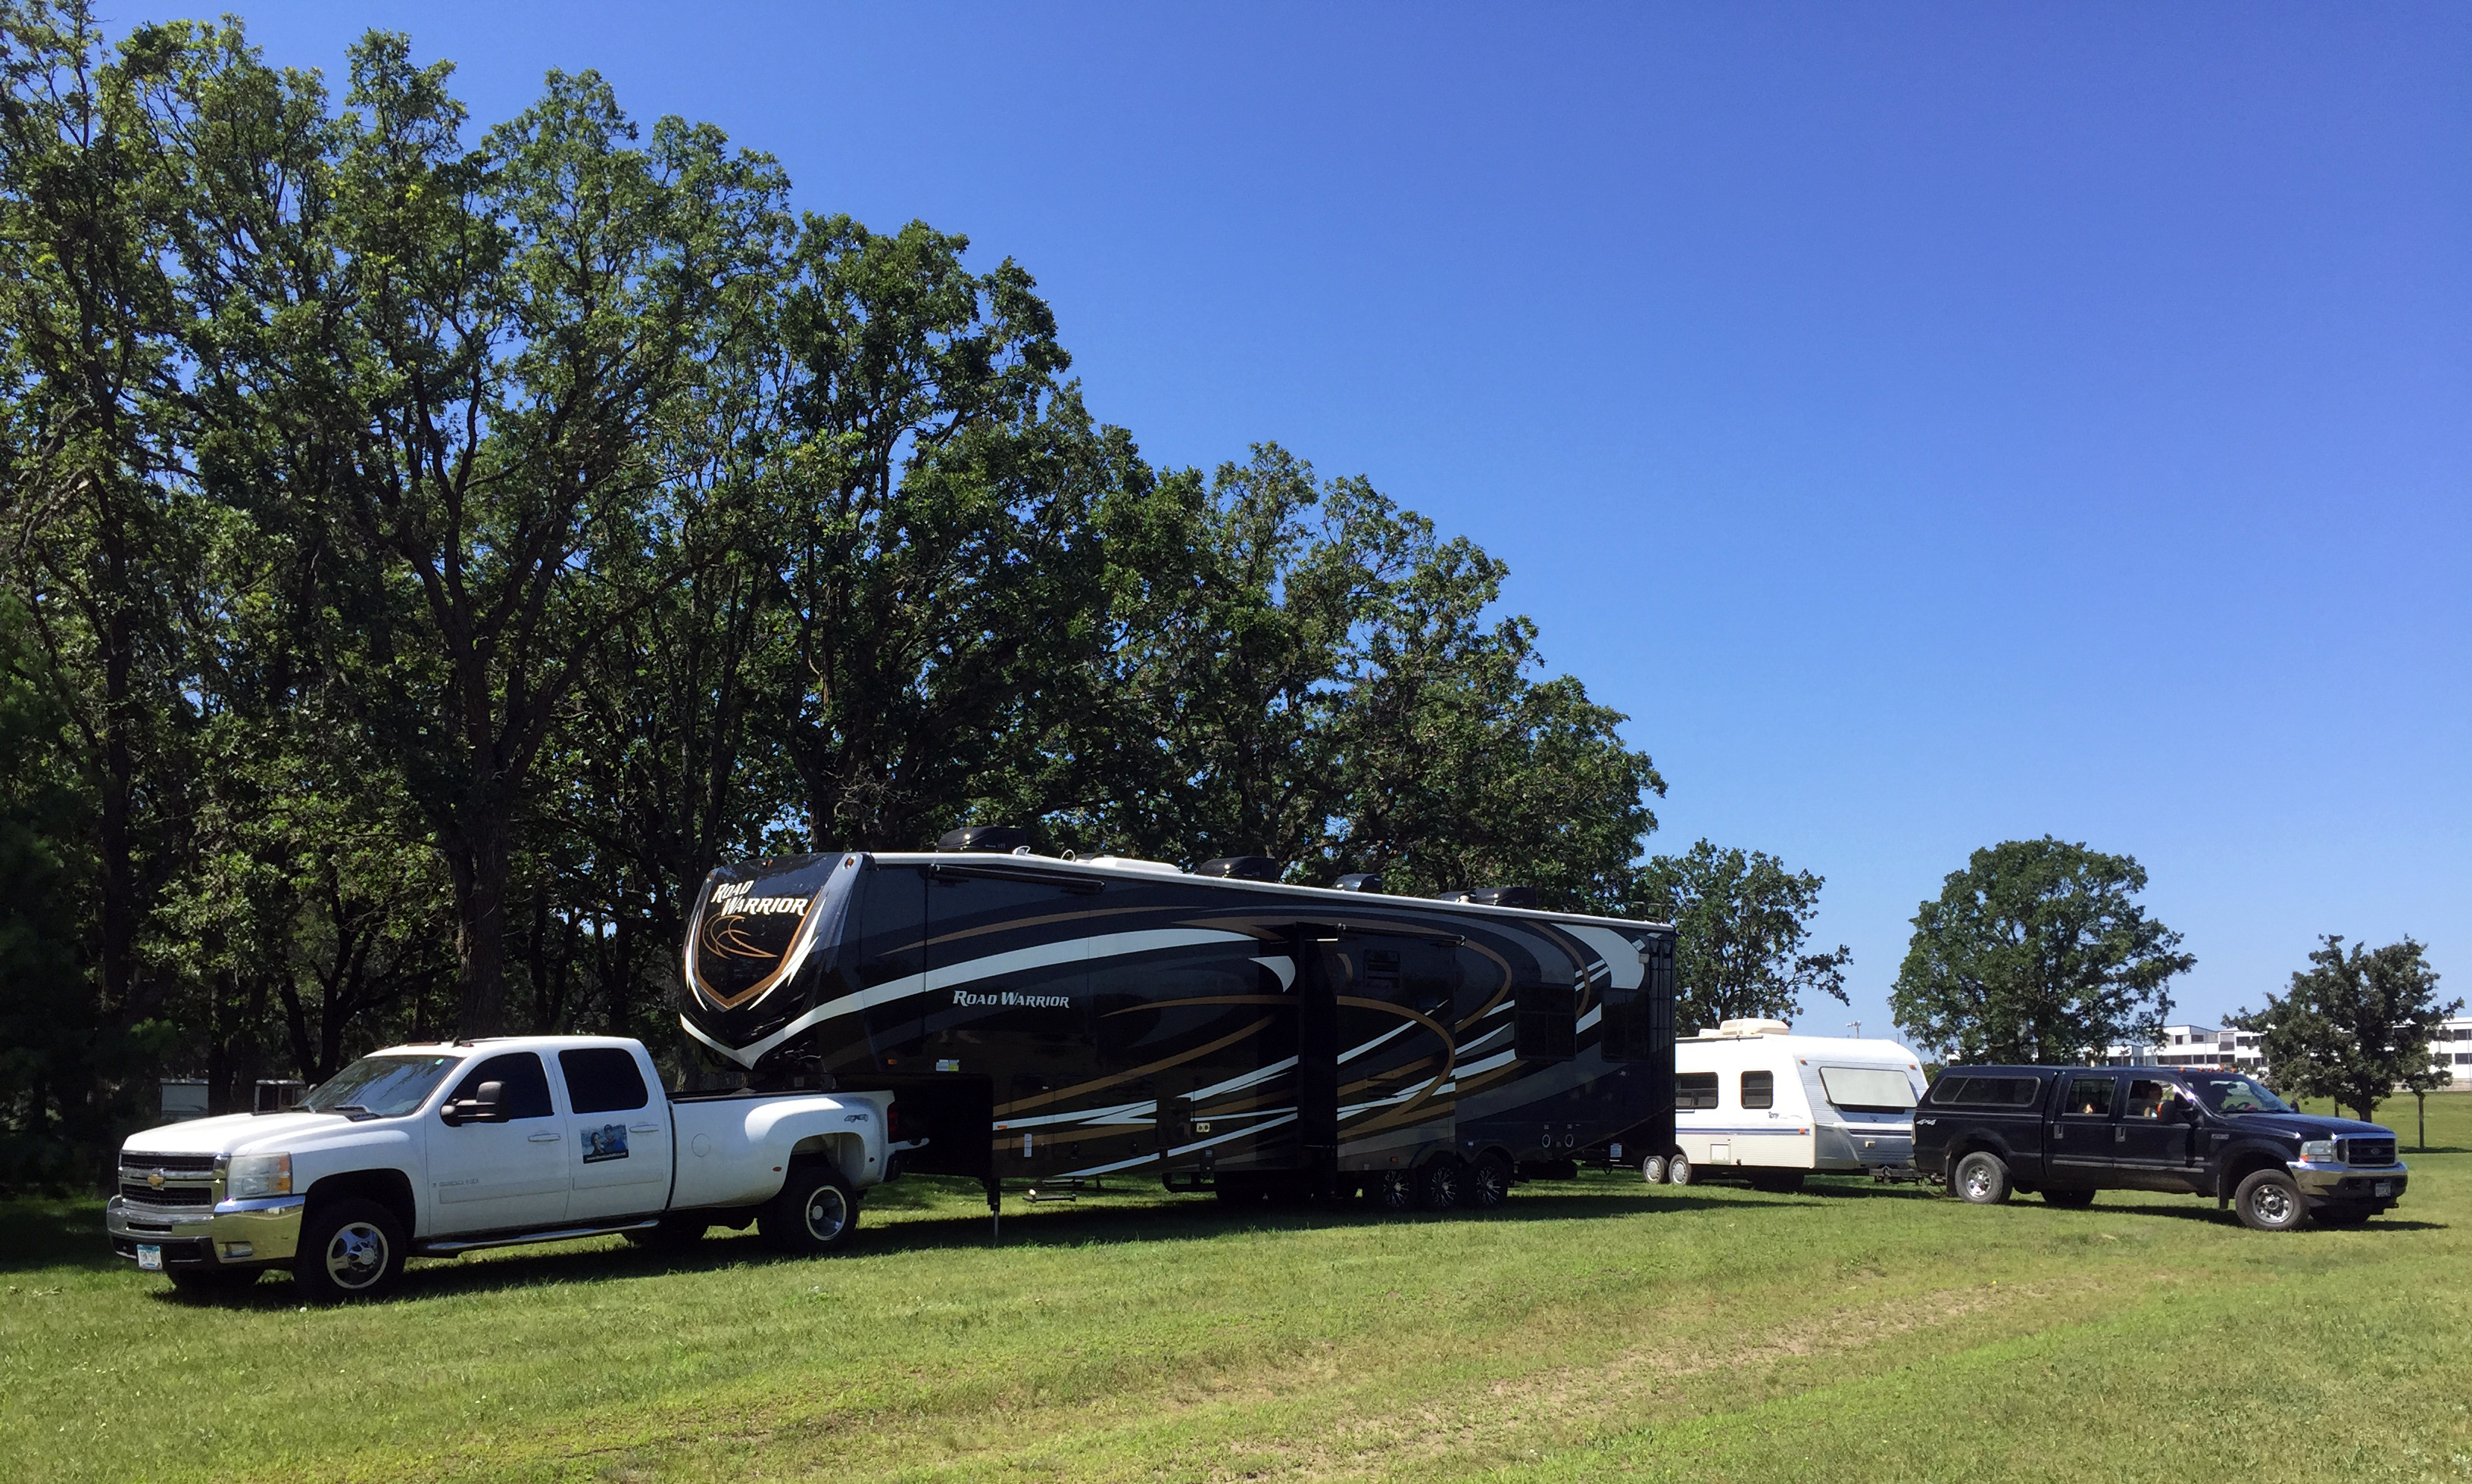 Camping at the Races (32)